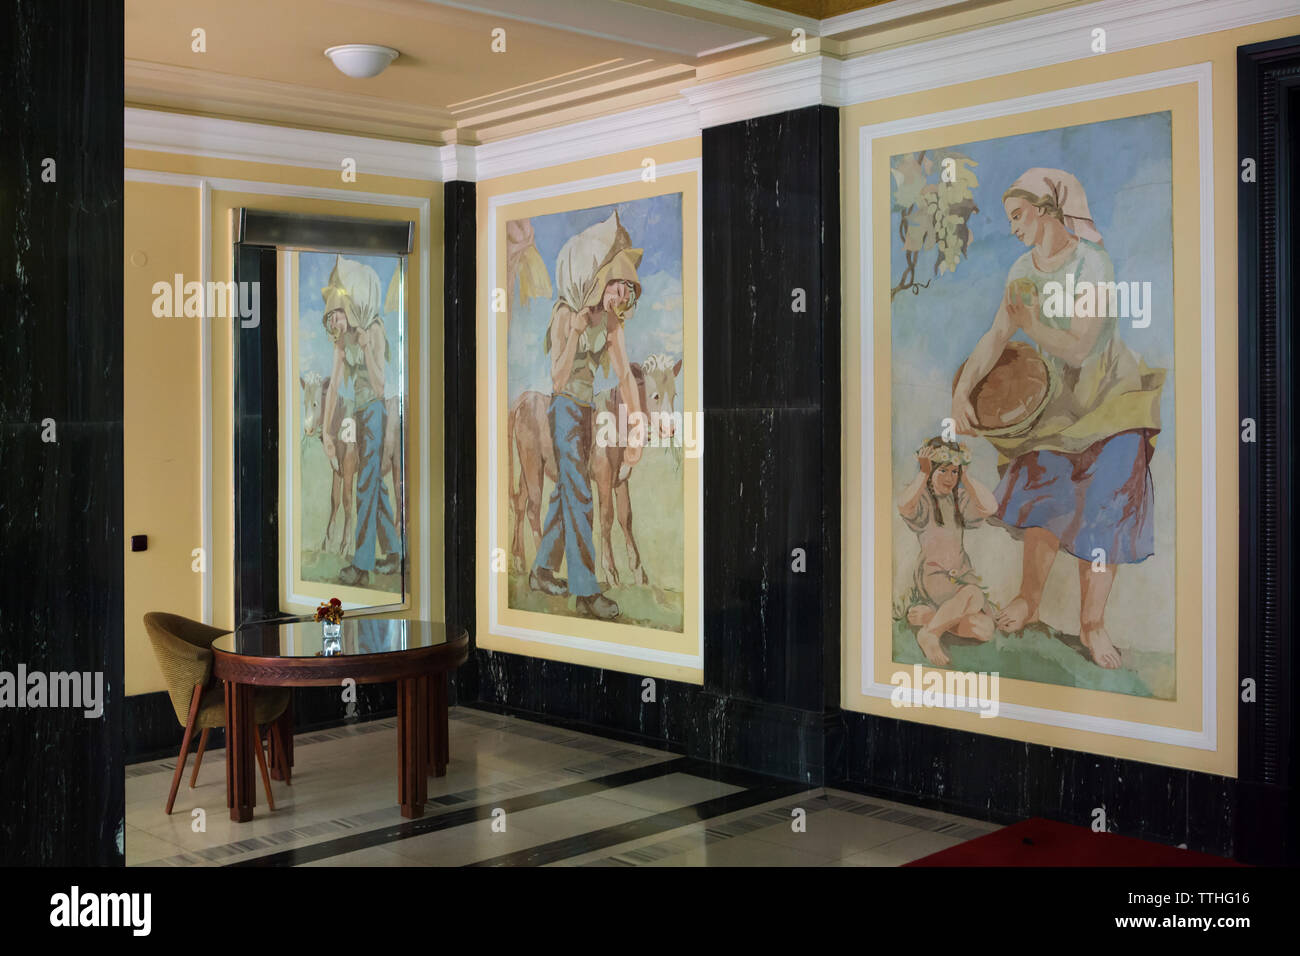 Venetian stucco panels by Czech artists Josef Novák and Stanislav Ullman on the main staircase of the in the Hotel International in Dejvice district in Prague, Czech Republic. The hotel inspired by Soviet Stalinist architecture was designed by Czech architect František Jeřábek and built in 1952-1956. Stock Photo